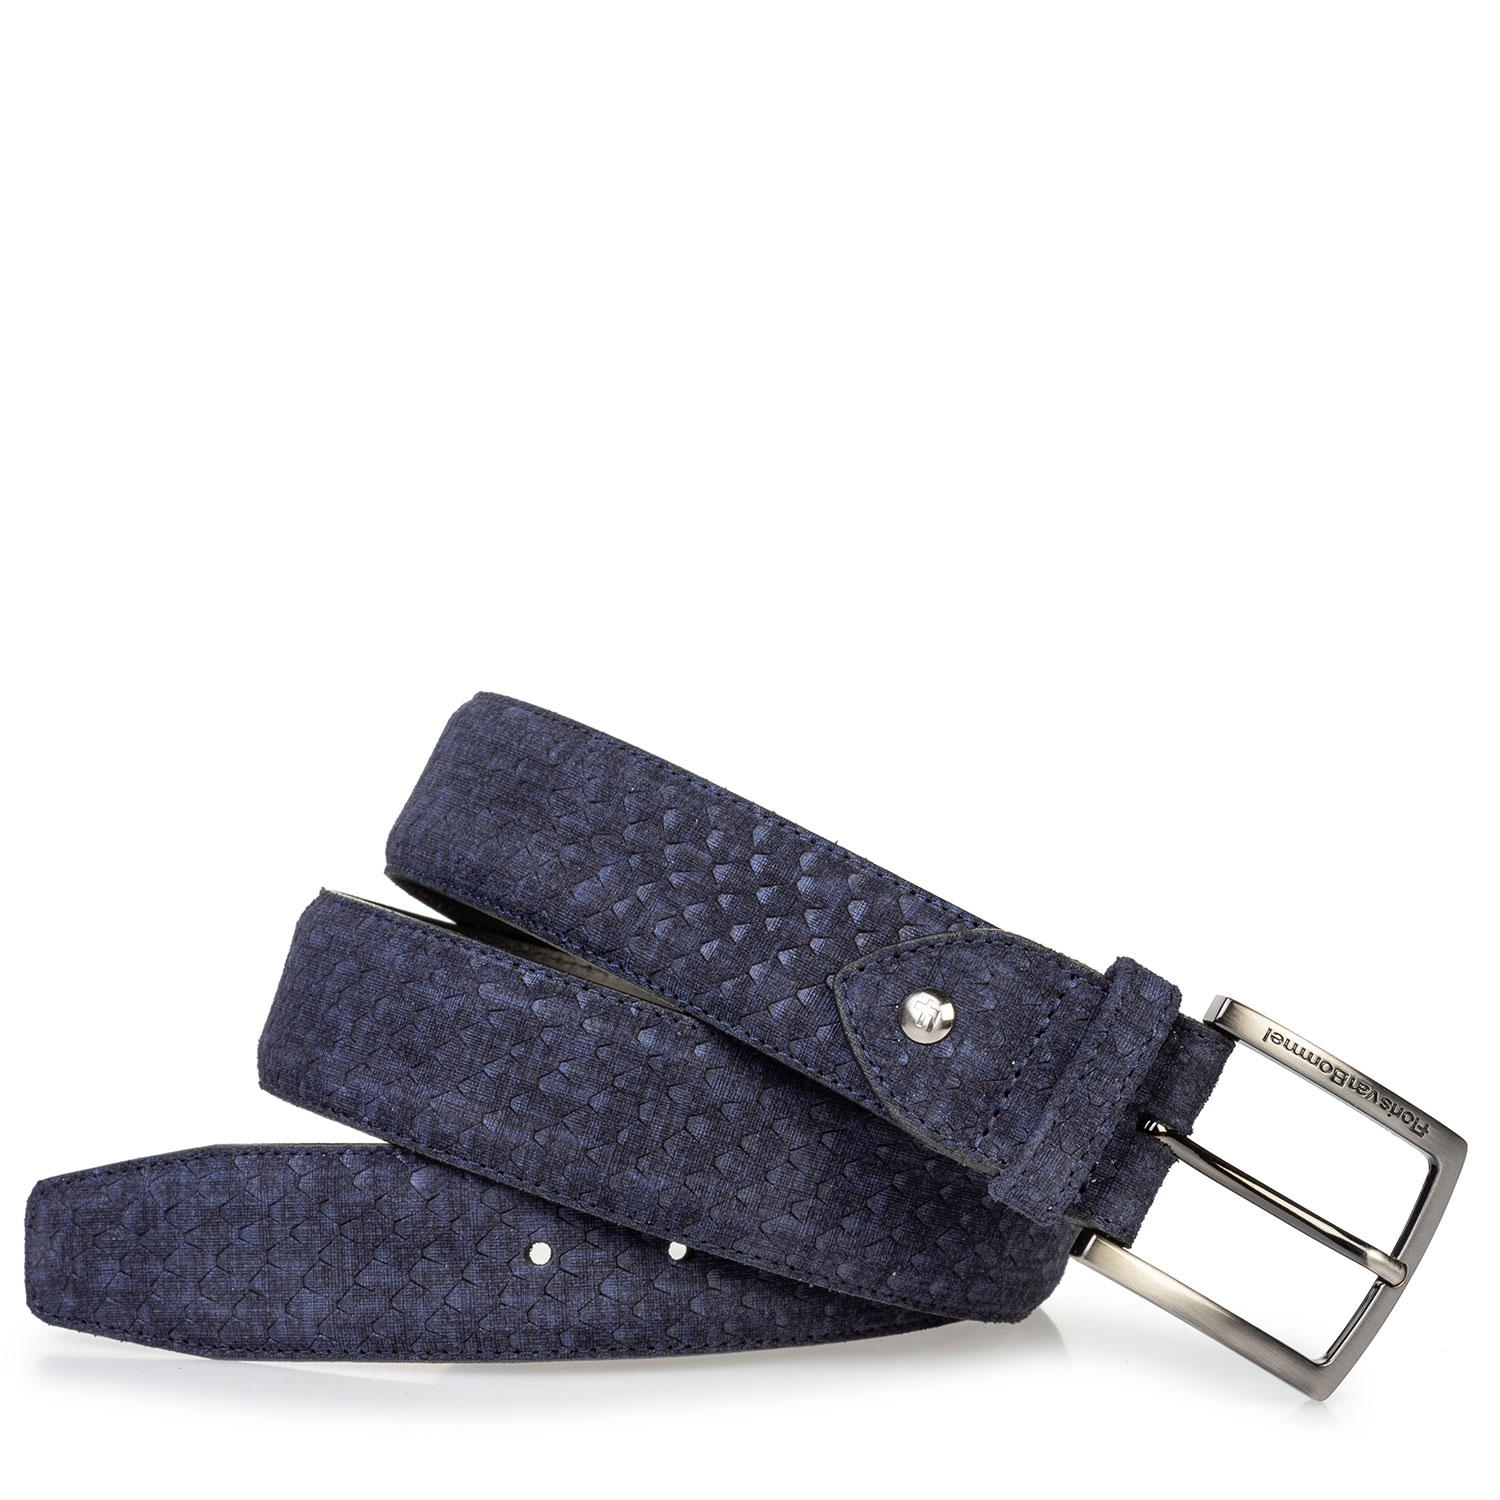 75204/06 - Suede leather belt blue with print